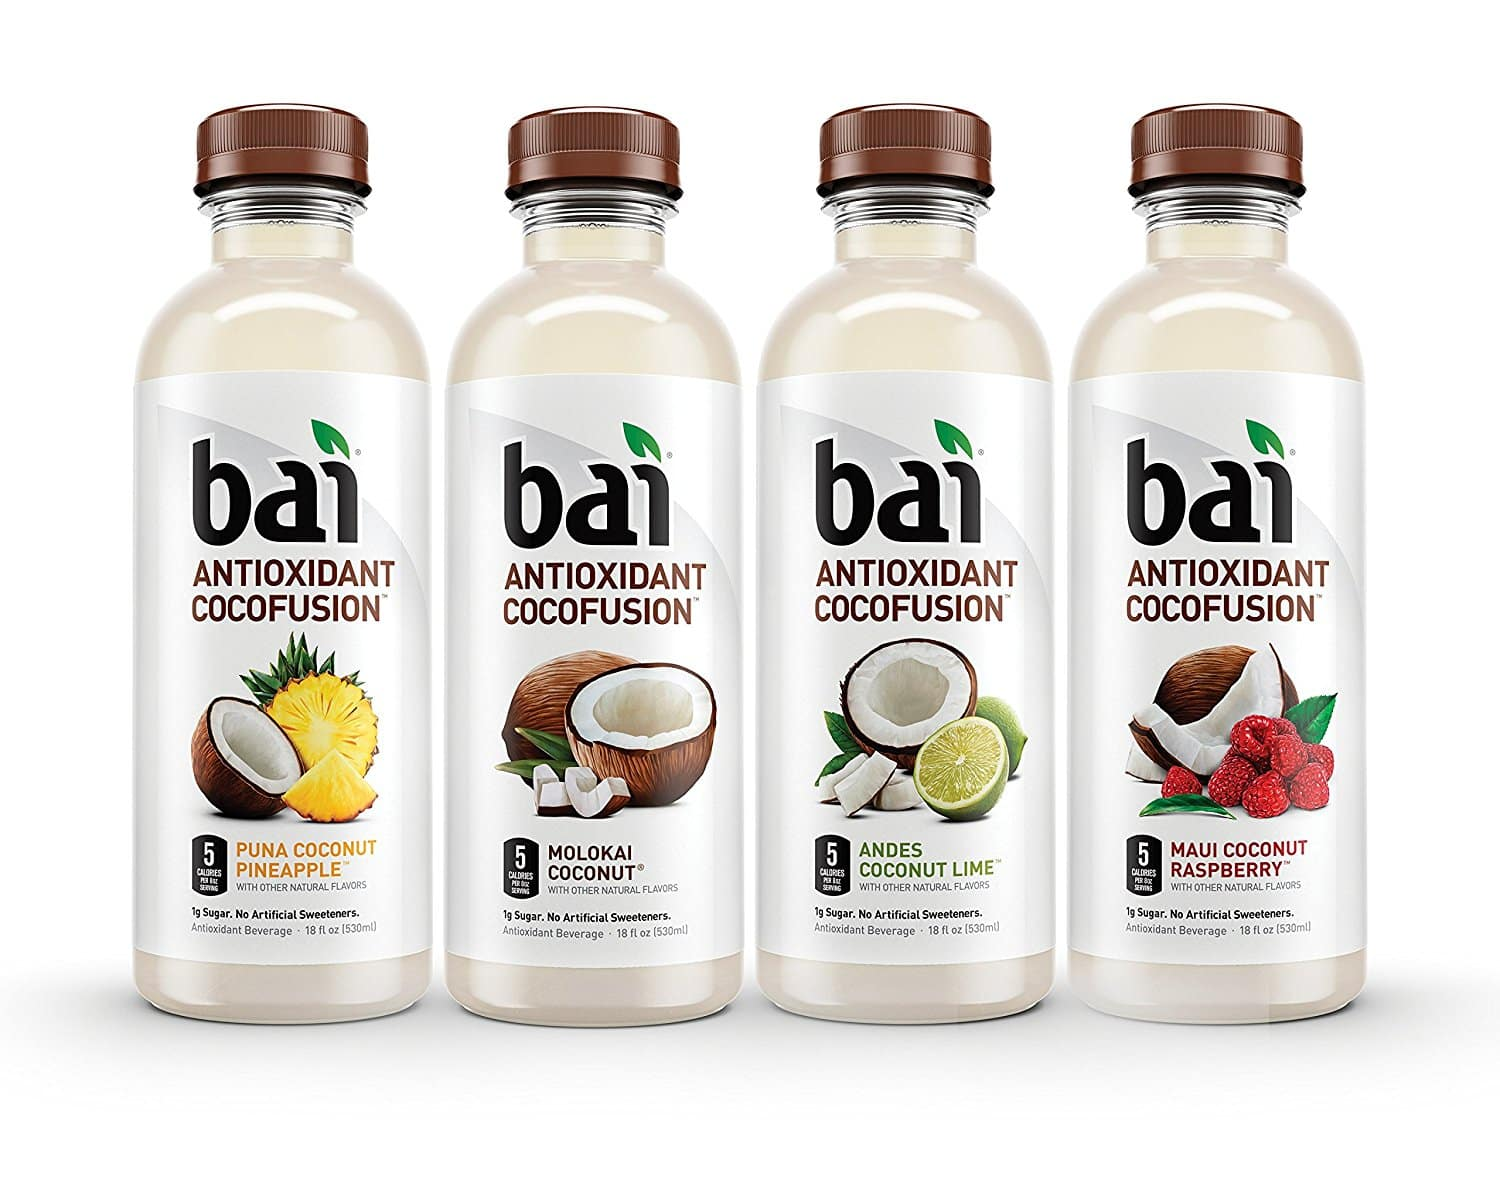 12-Pack of 18oz Bai Cocofusions Antioxidant Infused Beverages (Variety Pack) $9.31 or Less w/ S&S + Free Shipping ~ Amazon